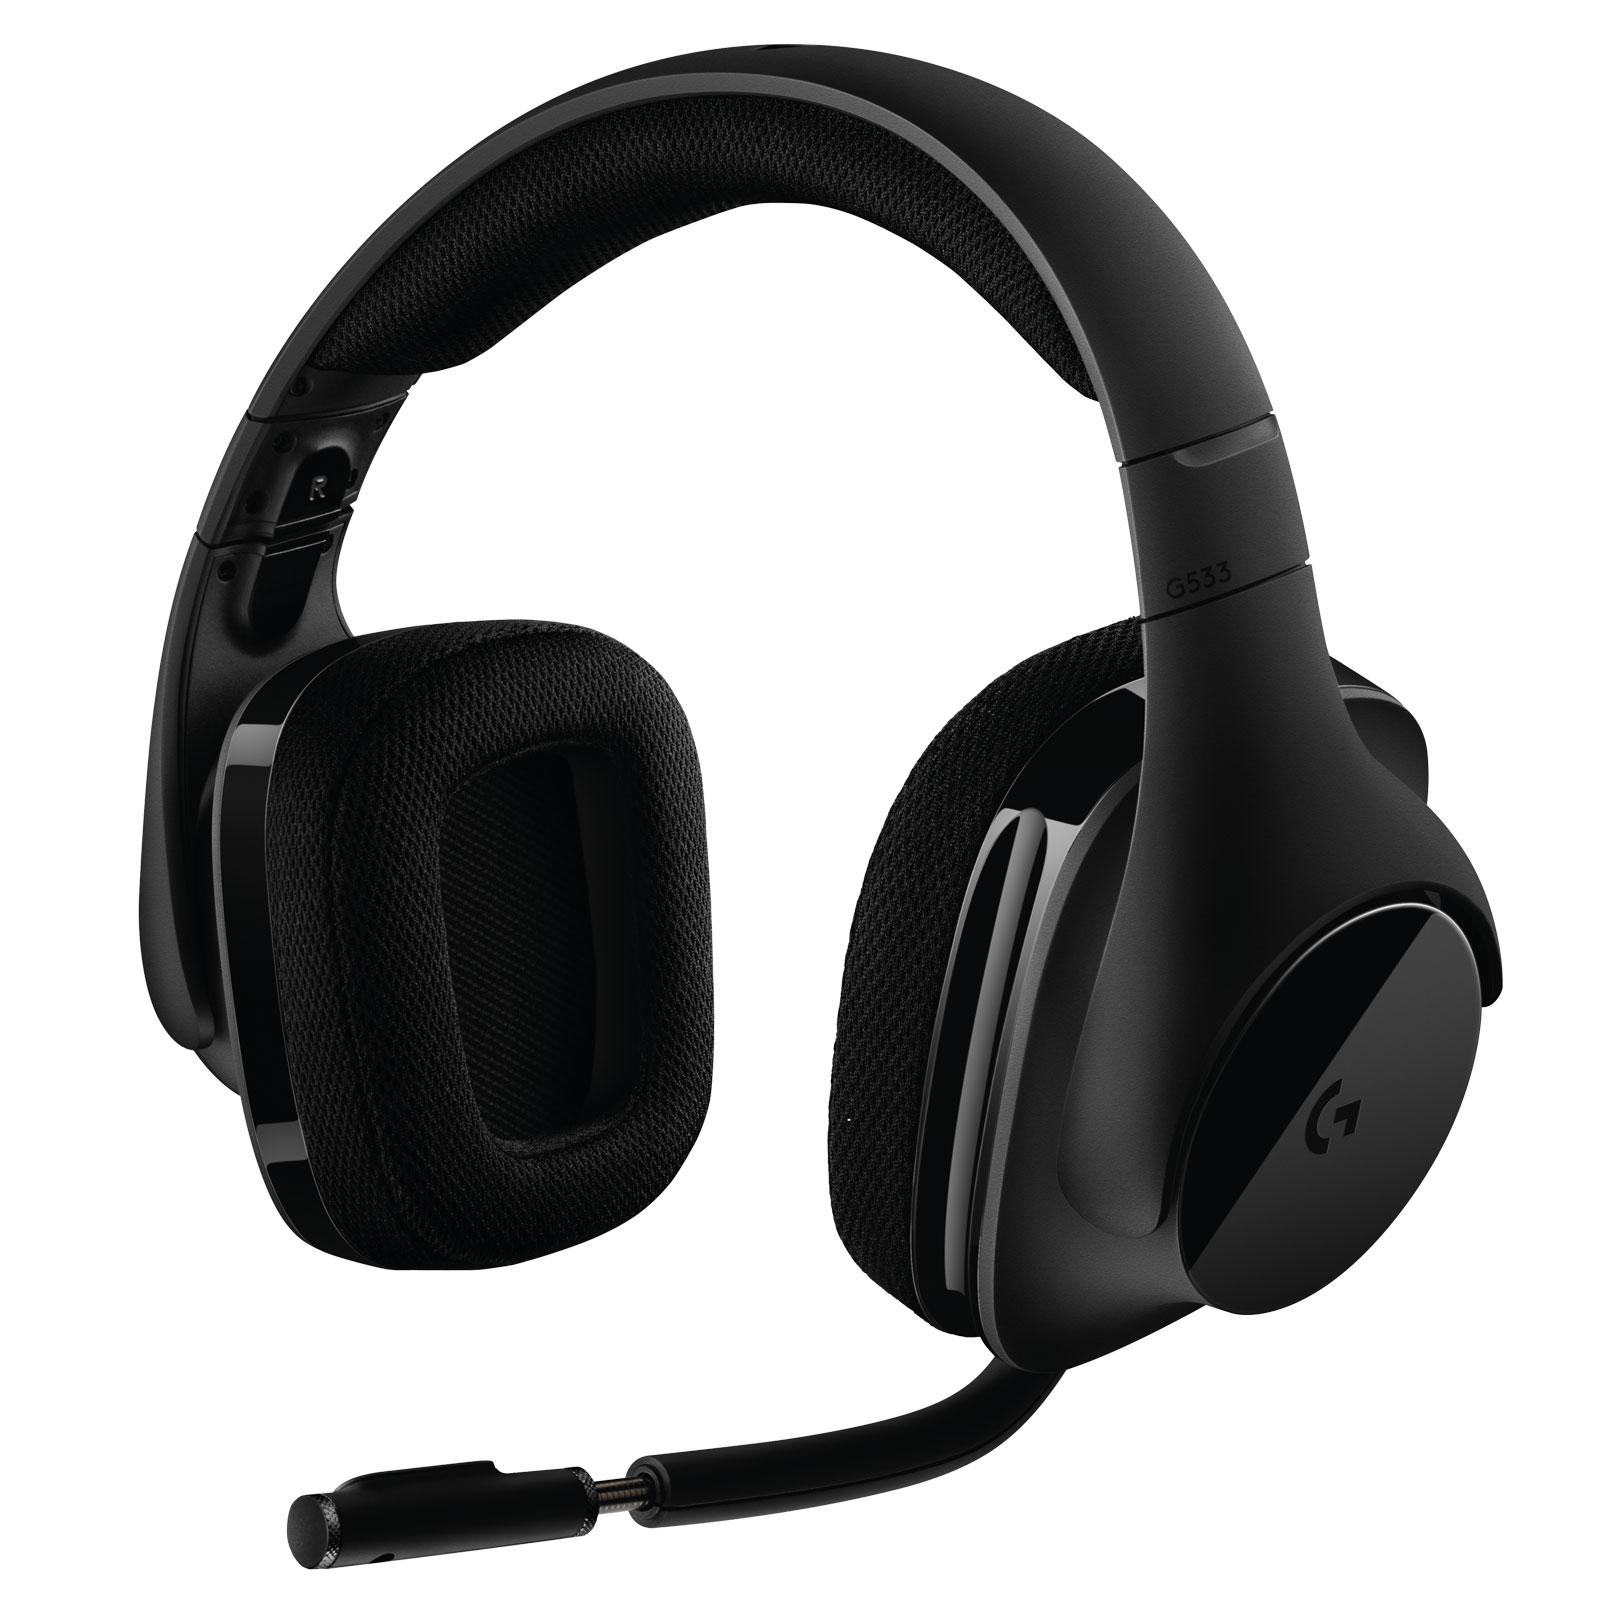 Micro-casque Logitech G533 Prodigy Wireless Gaming Headset Casque-micro 7.1 sans fil pour gamer